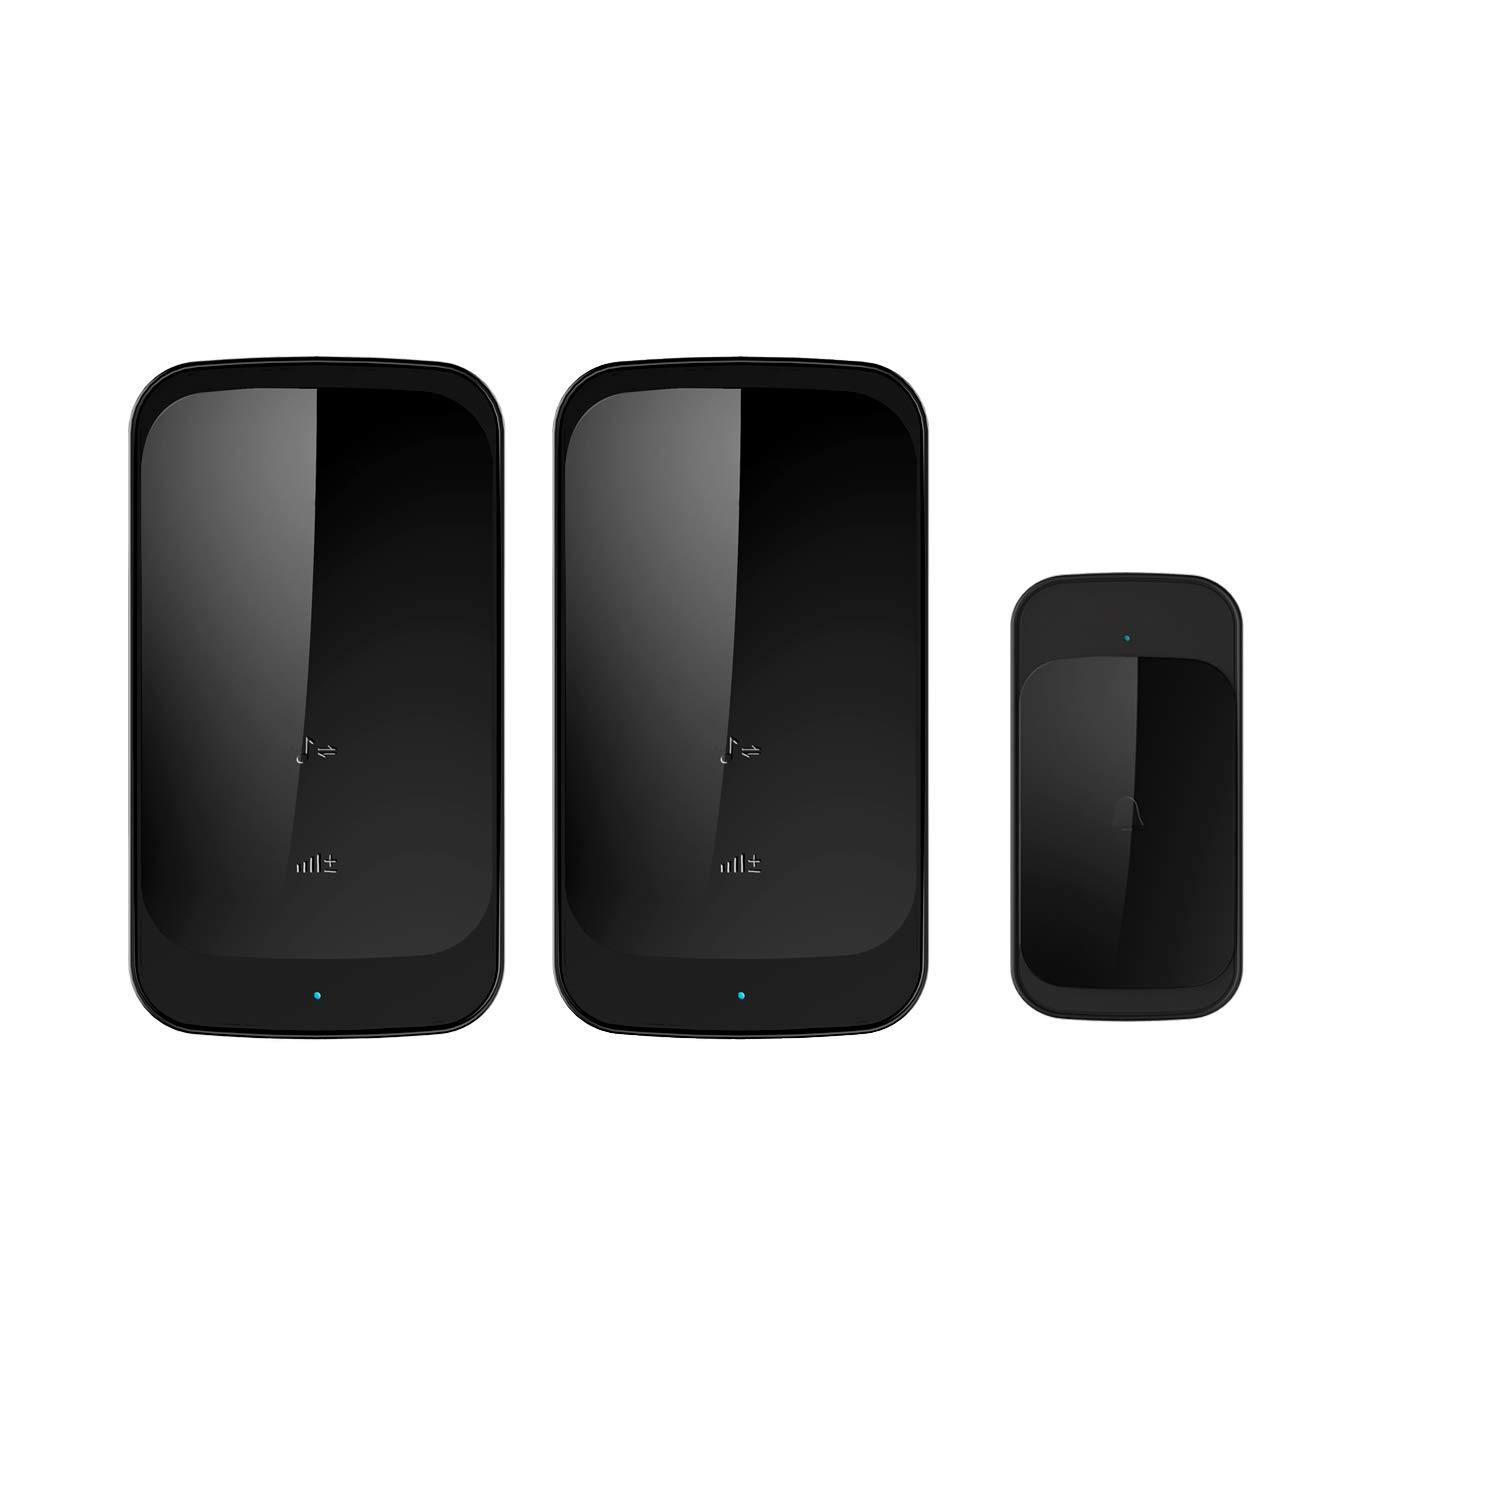 Anbear Wireless Doorbell with 2 Receivers Wireless Door Chime IP44 Waterpoof Operating at 900 Feet with 58 Melodies, 4 Volume Levels